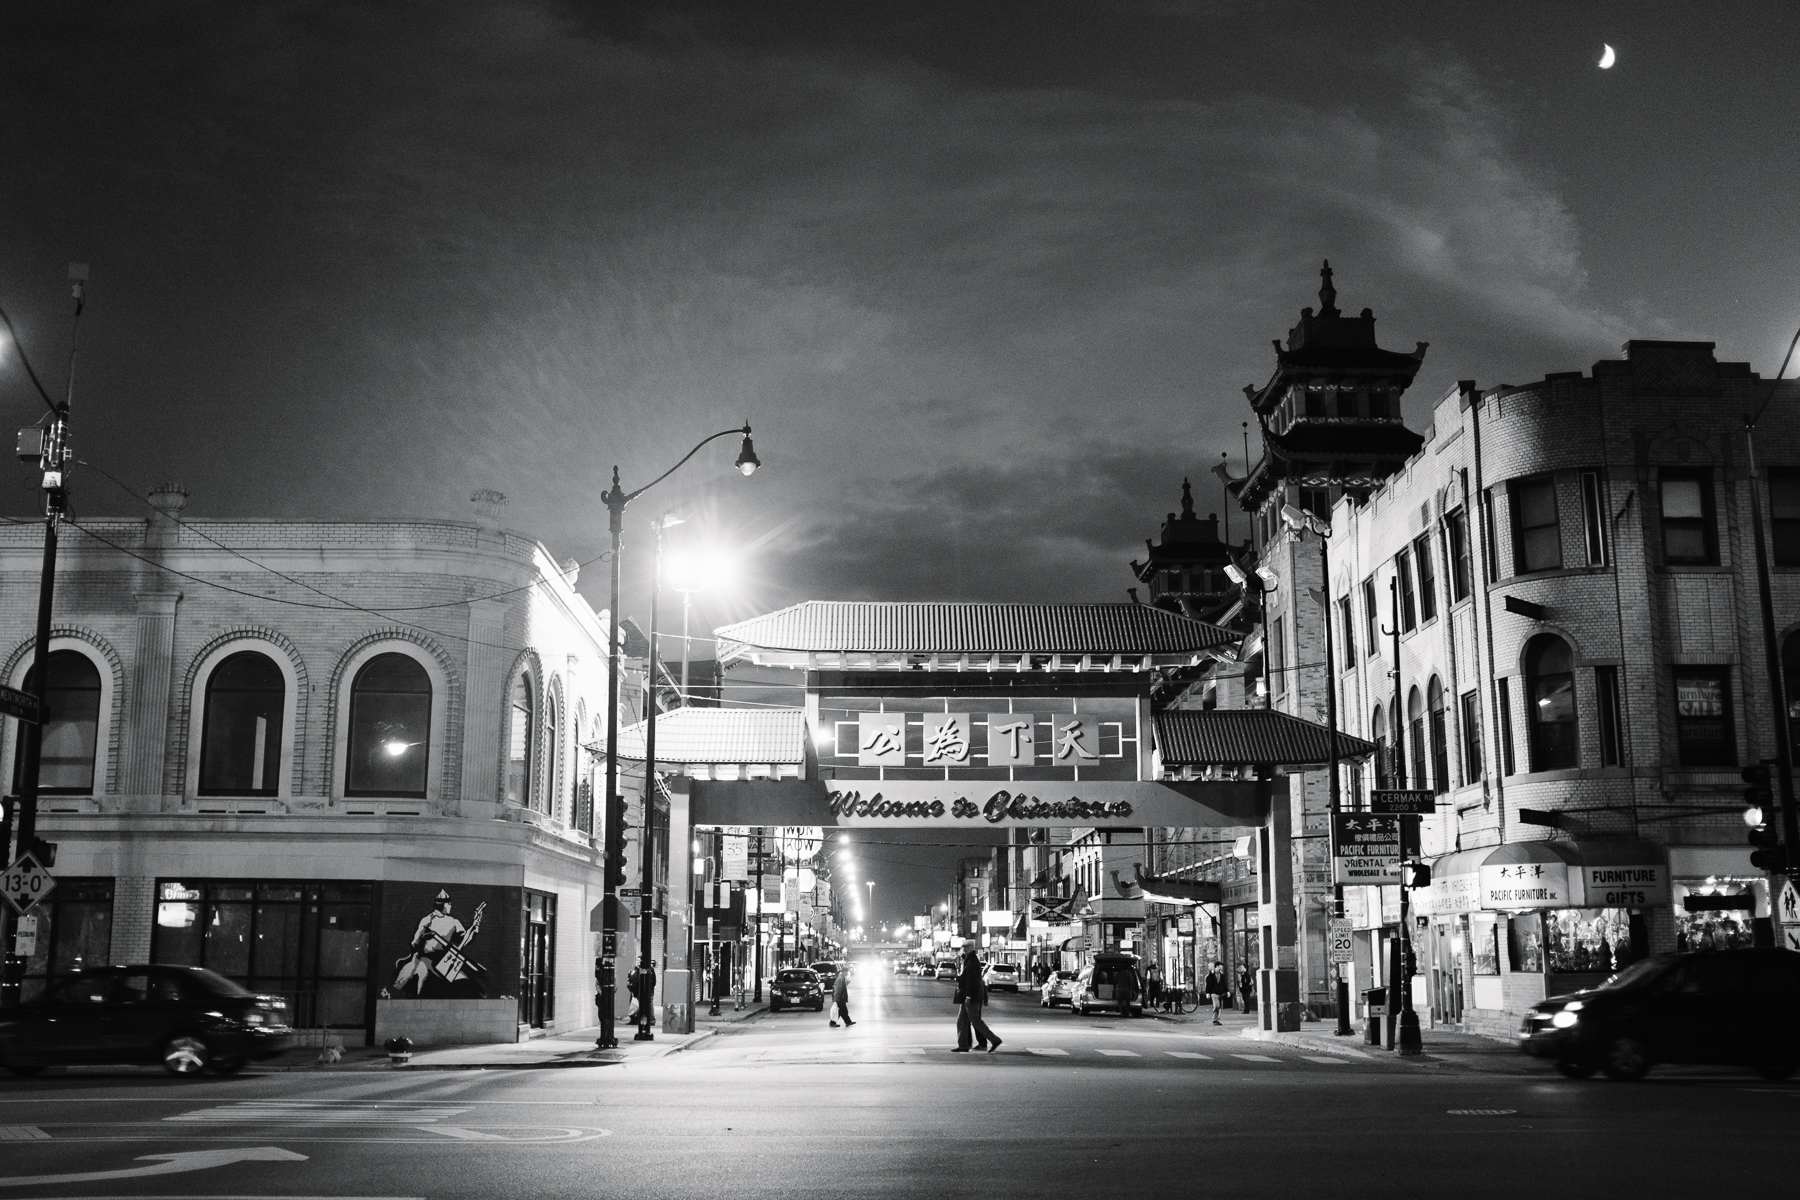 We seek out either Korea-town or Chinatown in all major US cities we travel to.